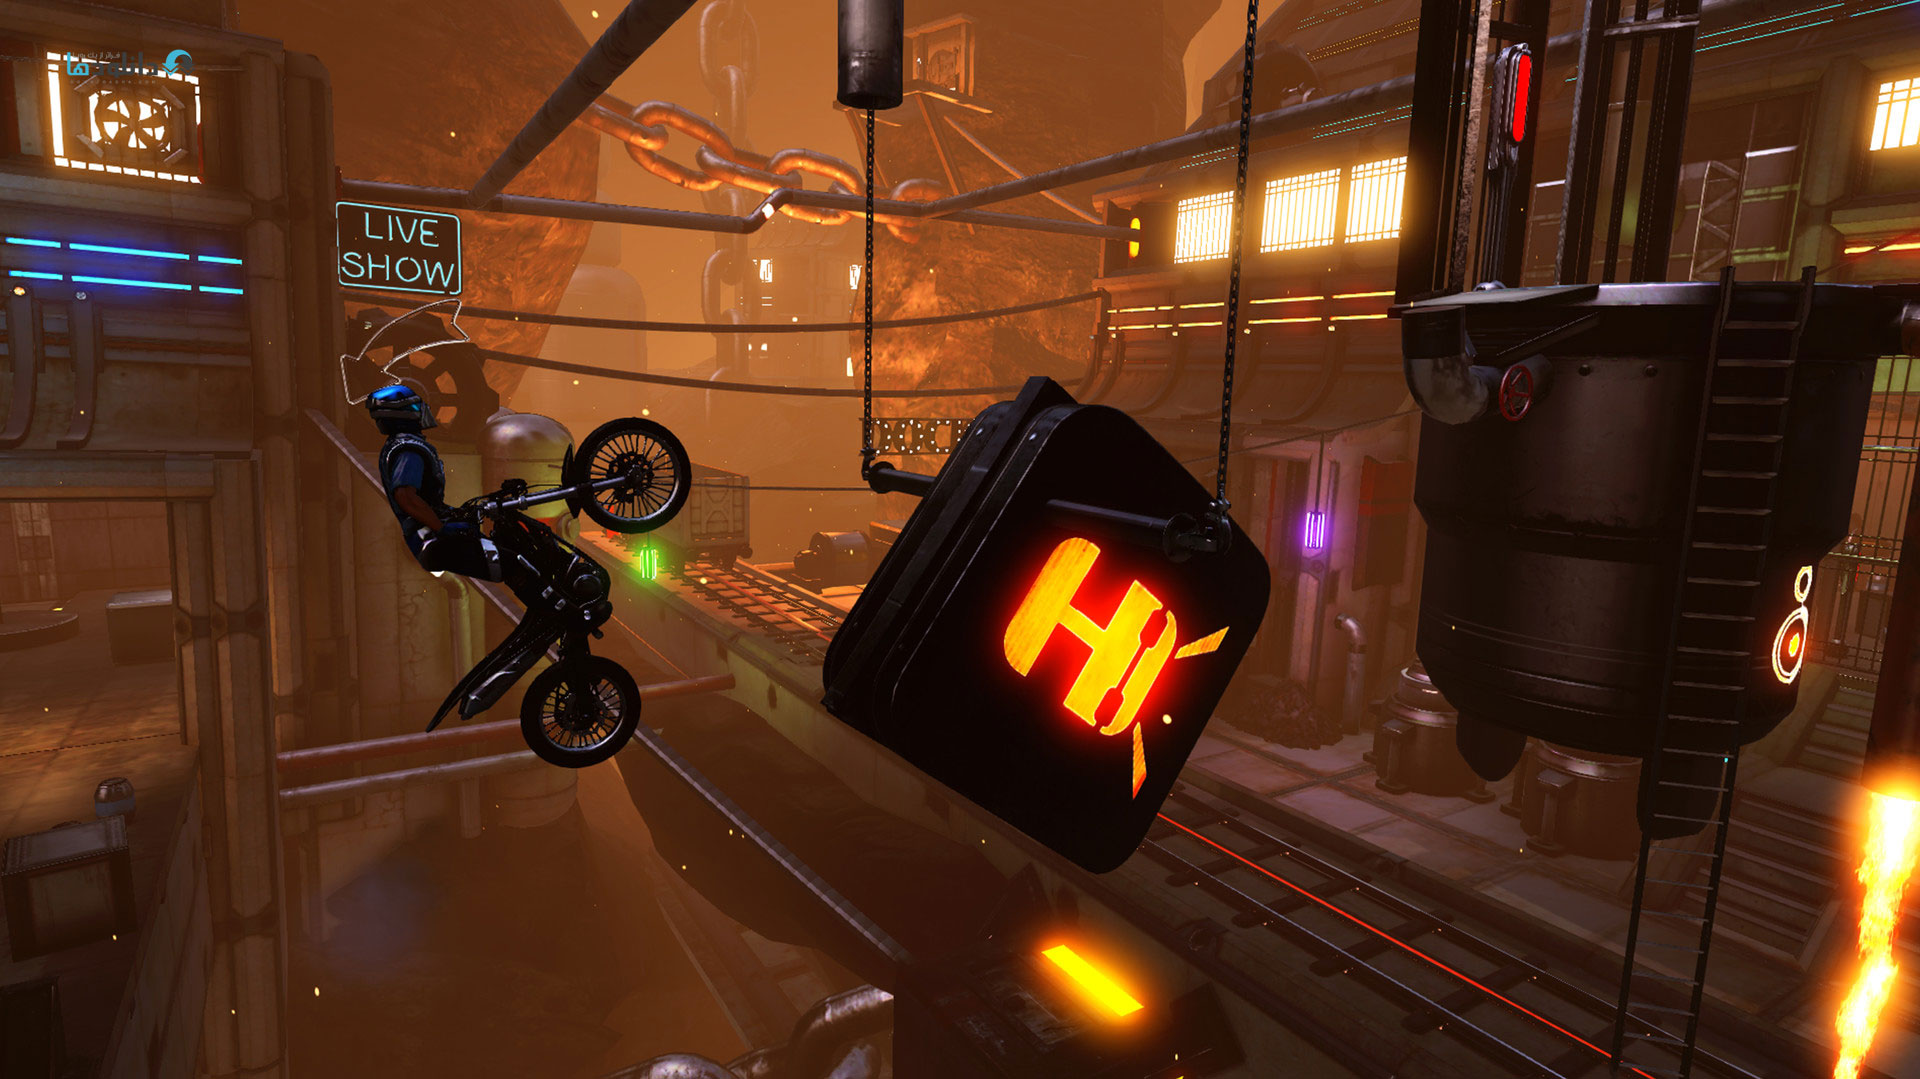 http://dl5.downloadha.com/hosein/Game/January%202015/30/Trials-Fusion-Fire-in-the-Deep-screenshots-05-large.jpg